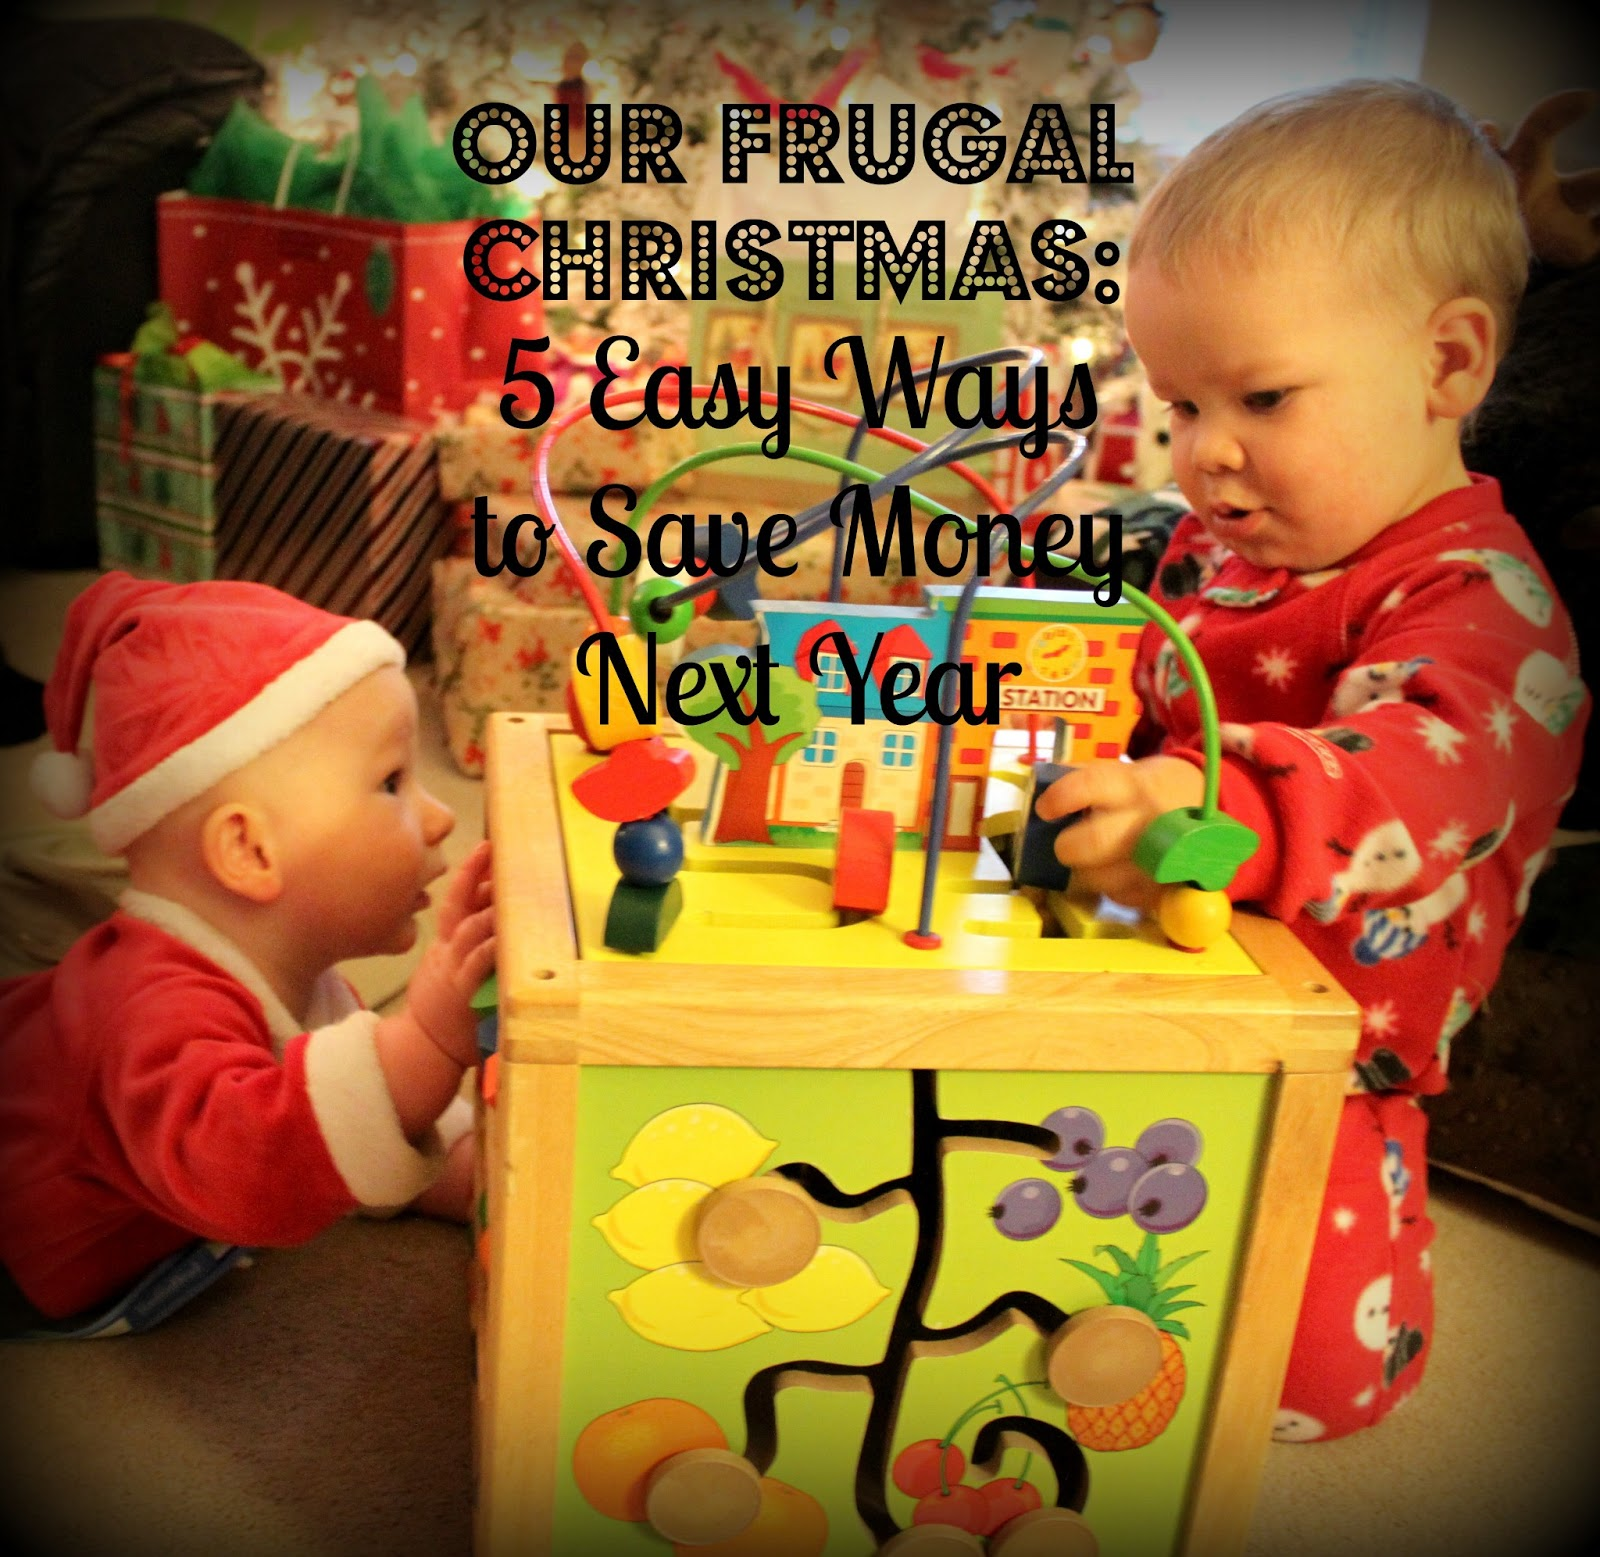 Easy Year To Travel On Christmas: Frugal Christmas: Five Easy Ways To Save Money Next Year